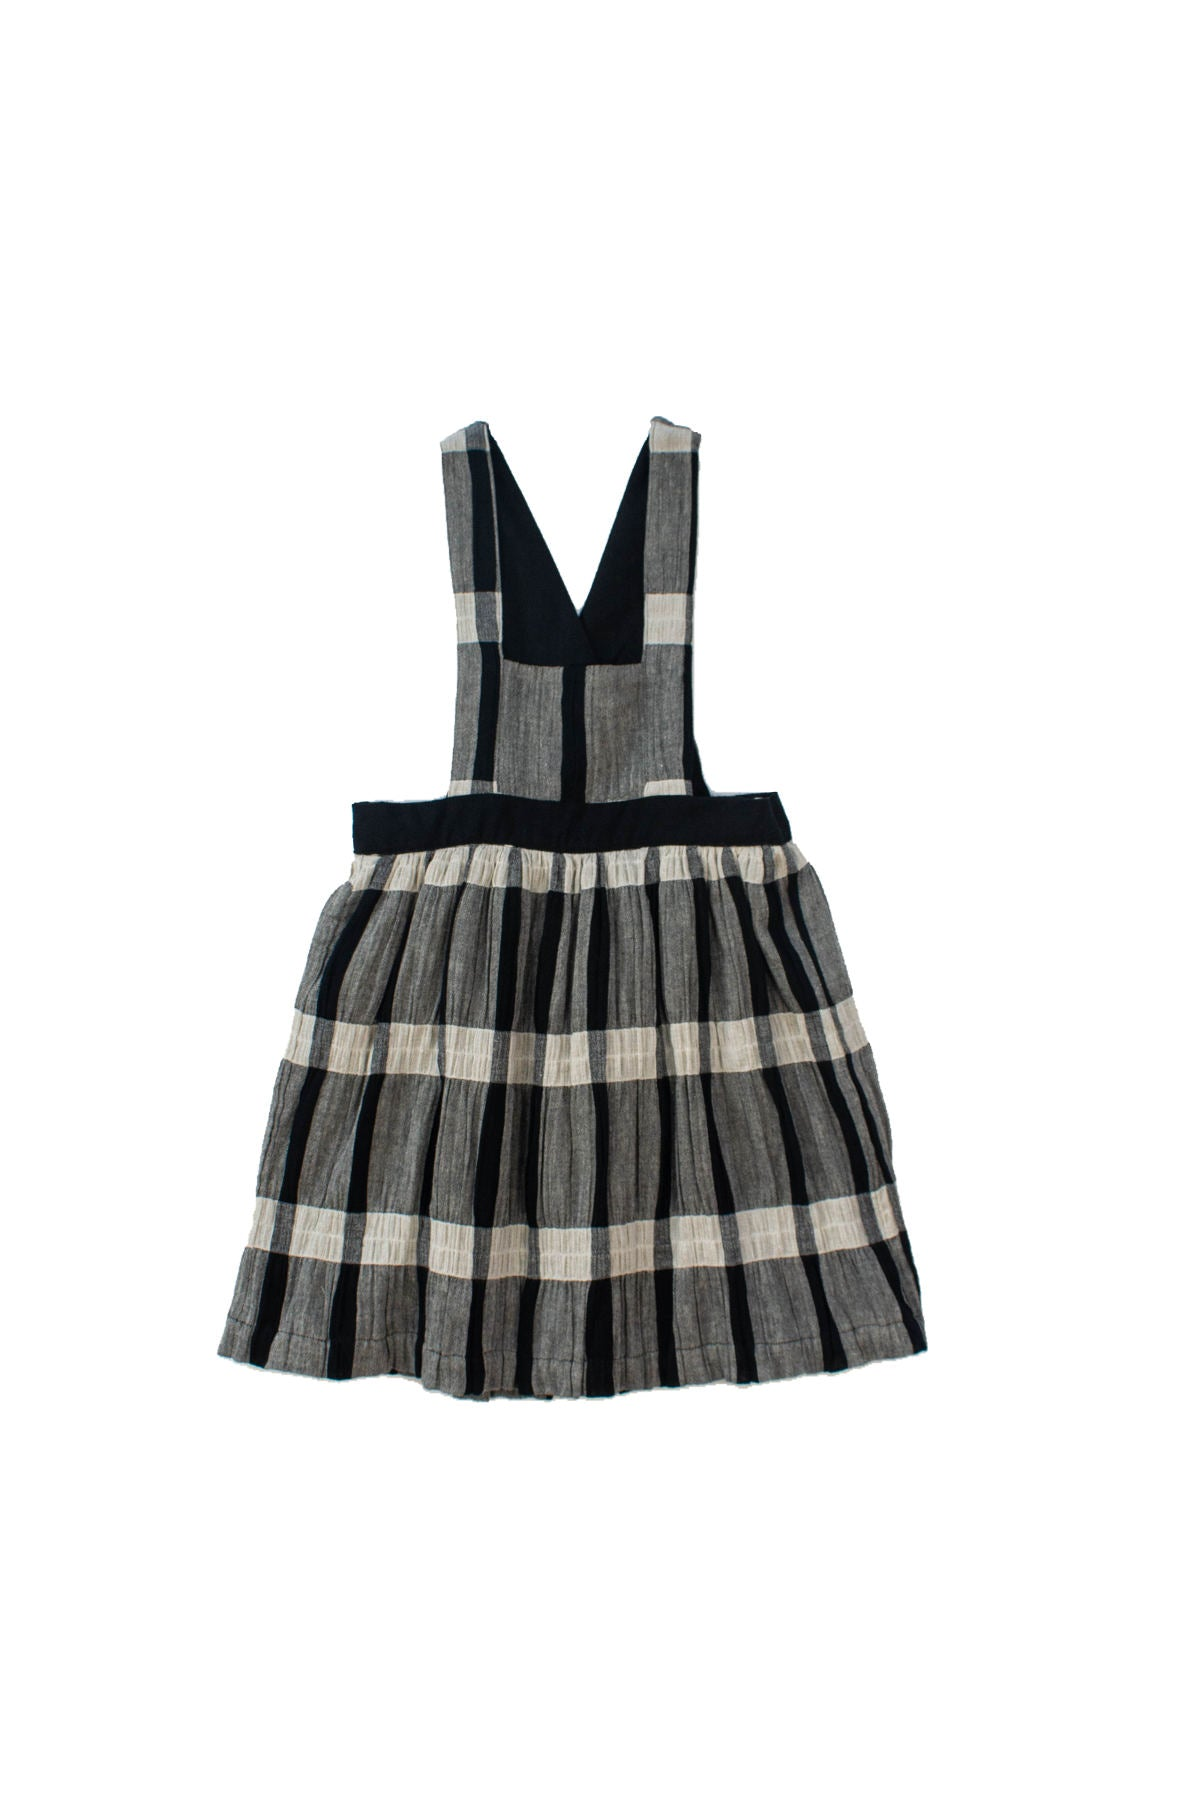 Kokori Black Plaid Aria Dress